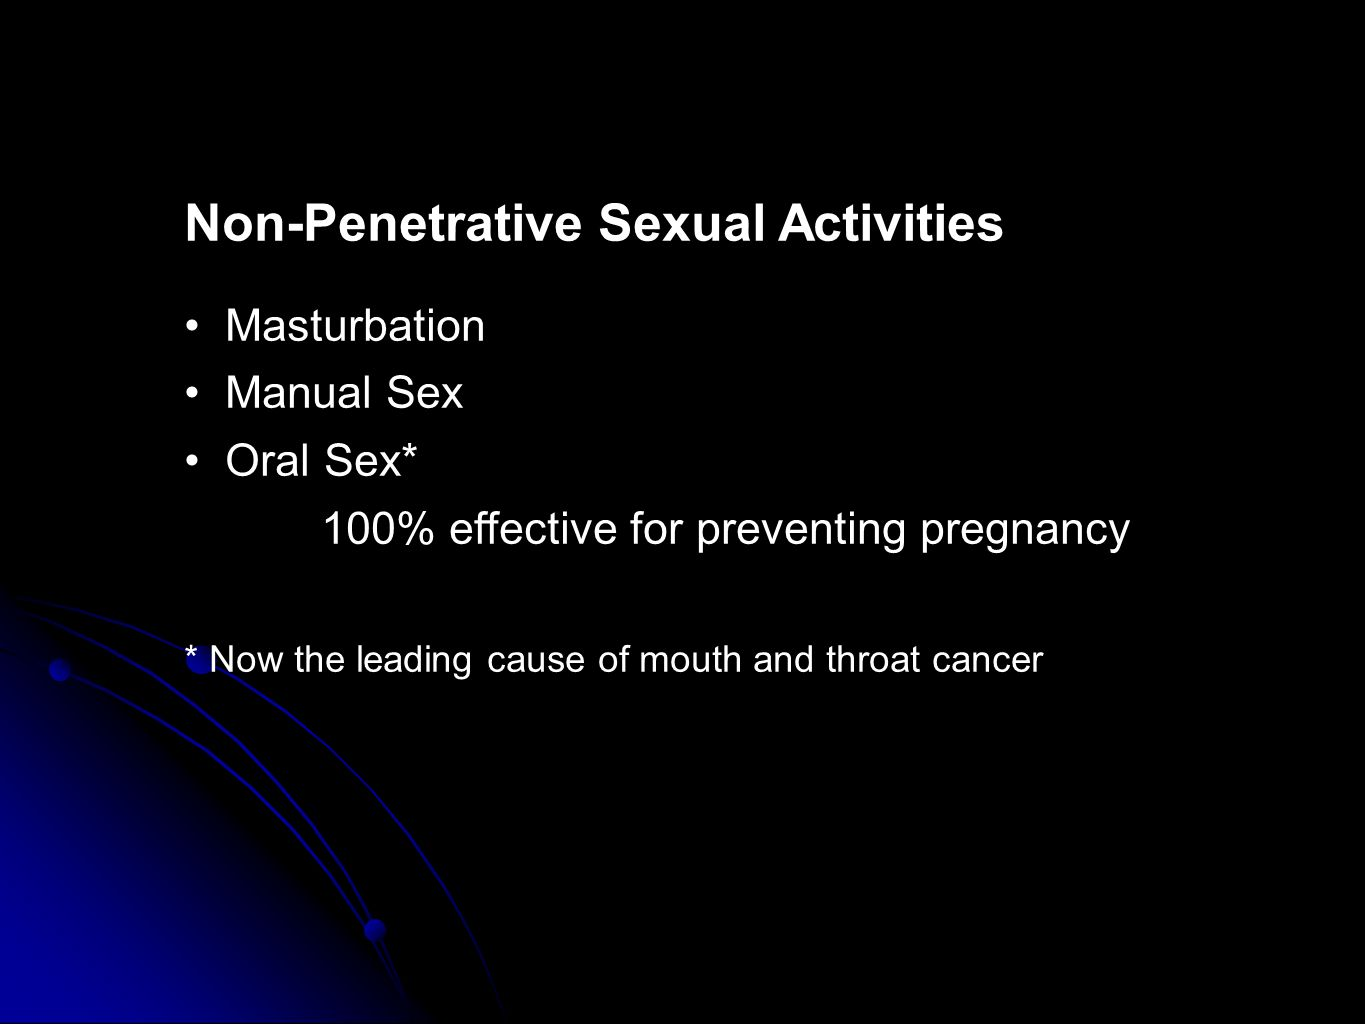 penetrative meaning